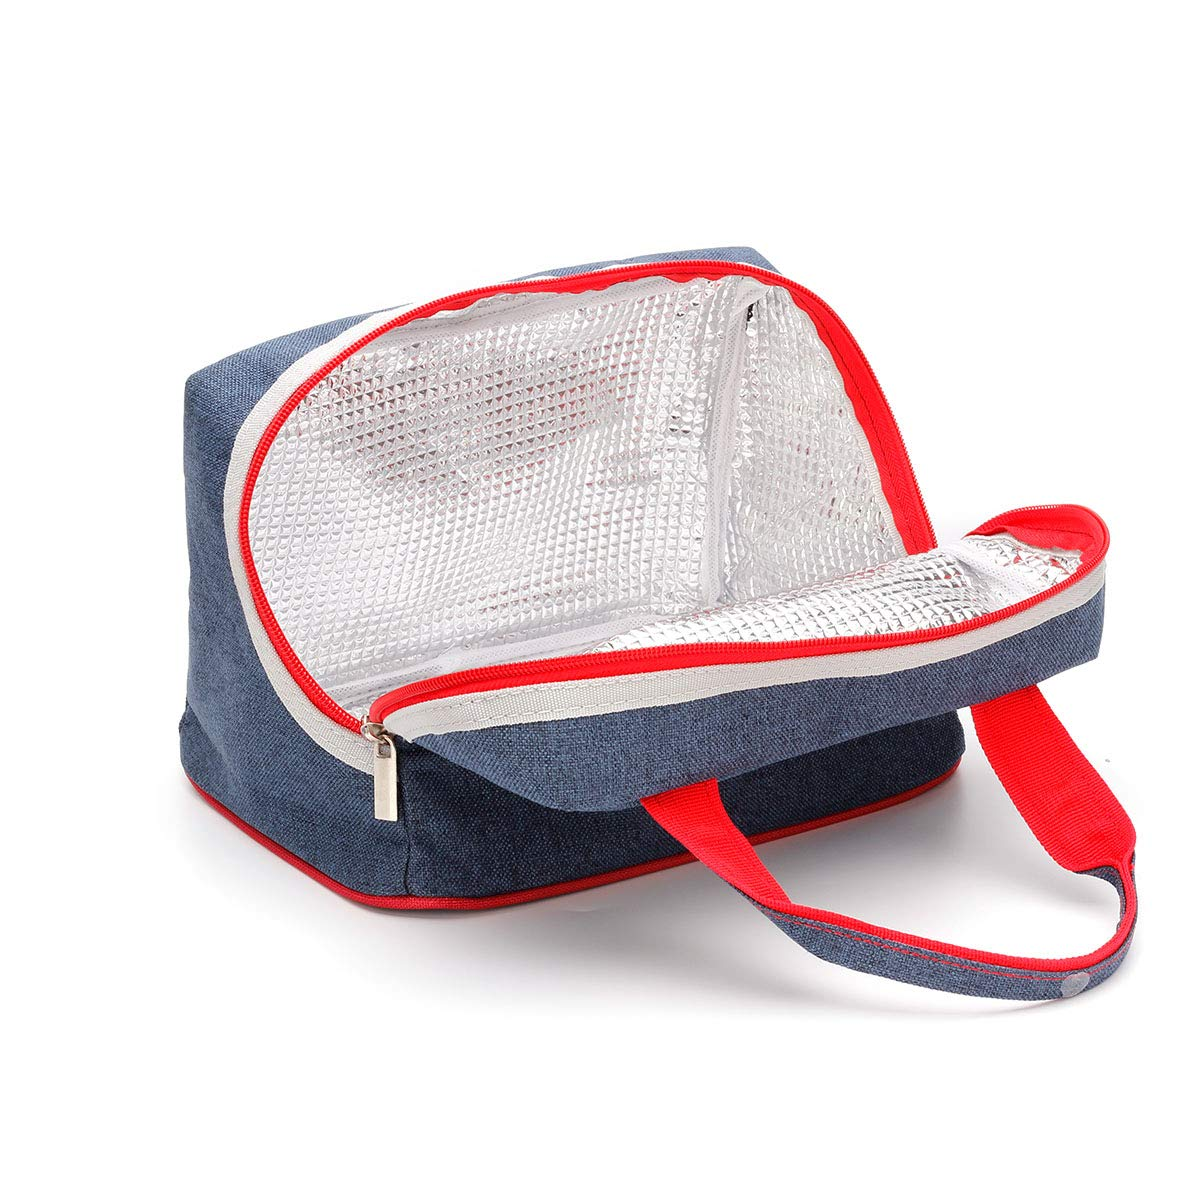 Lunch Bag Insulated Lunch Box Denim Tote Bag Reusable Lunch Containers with Zip Closure Lunch Organizer for Women Men Kids Boys Girls,School Work Office